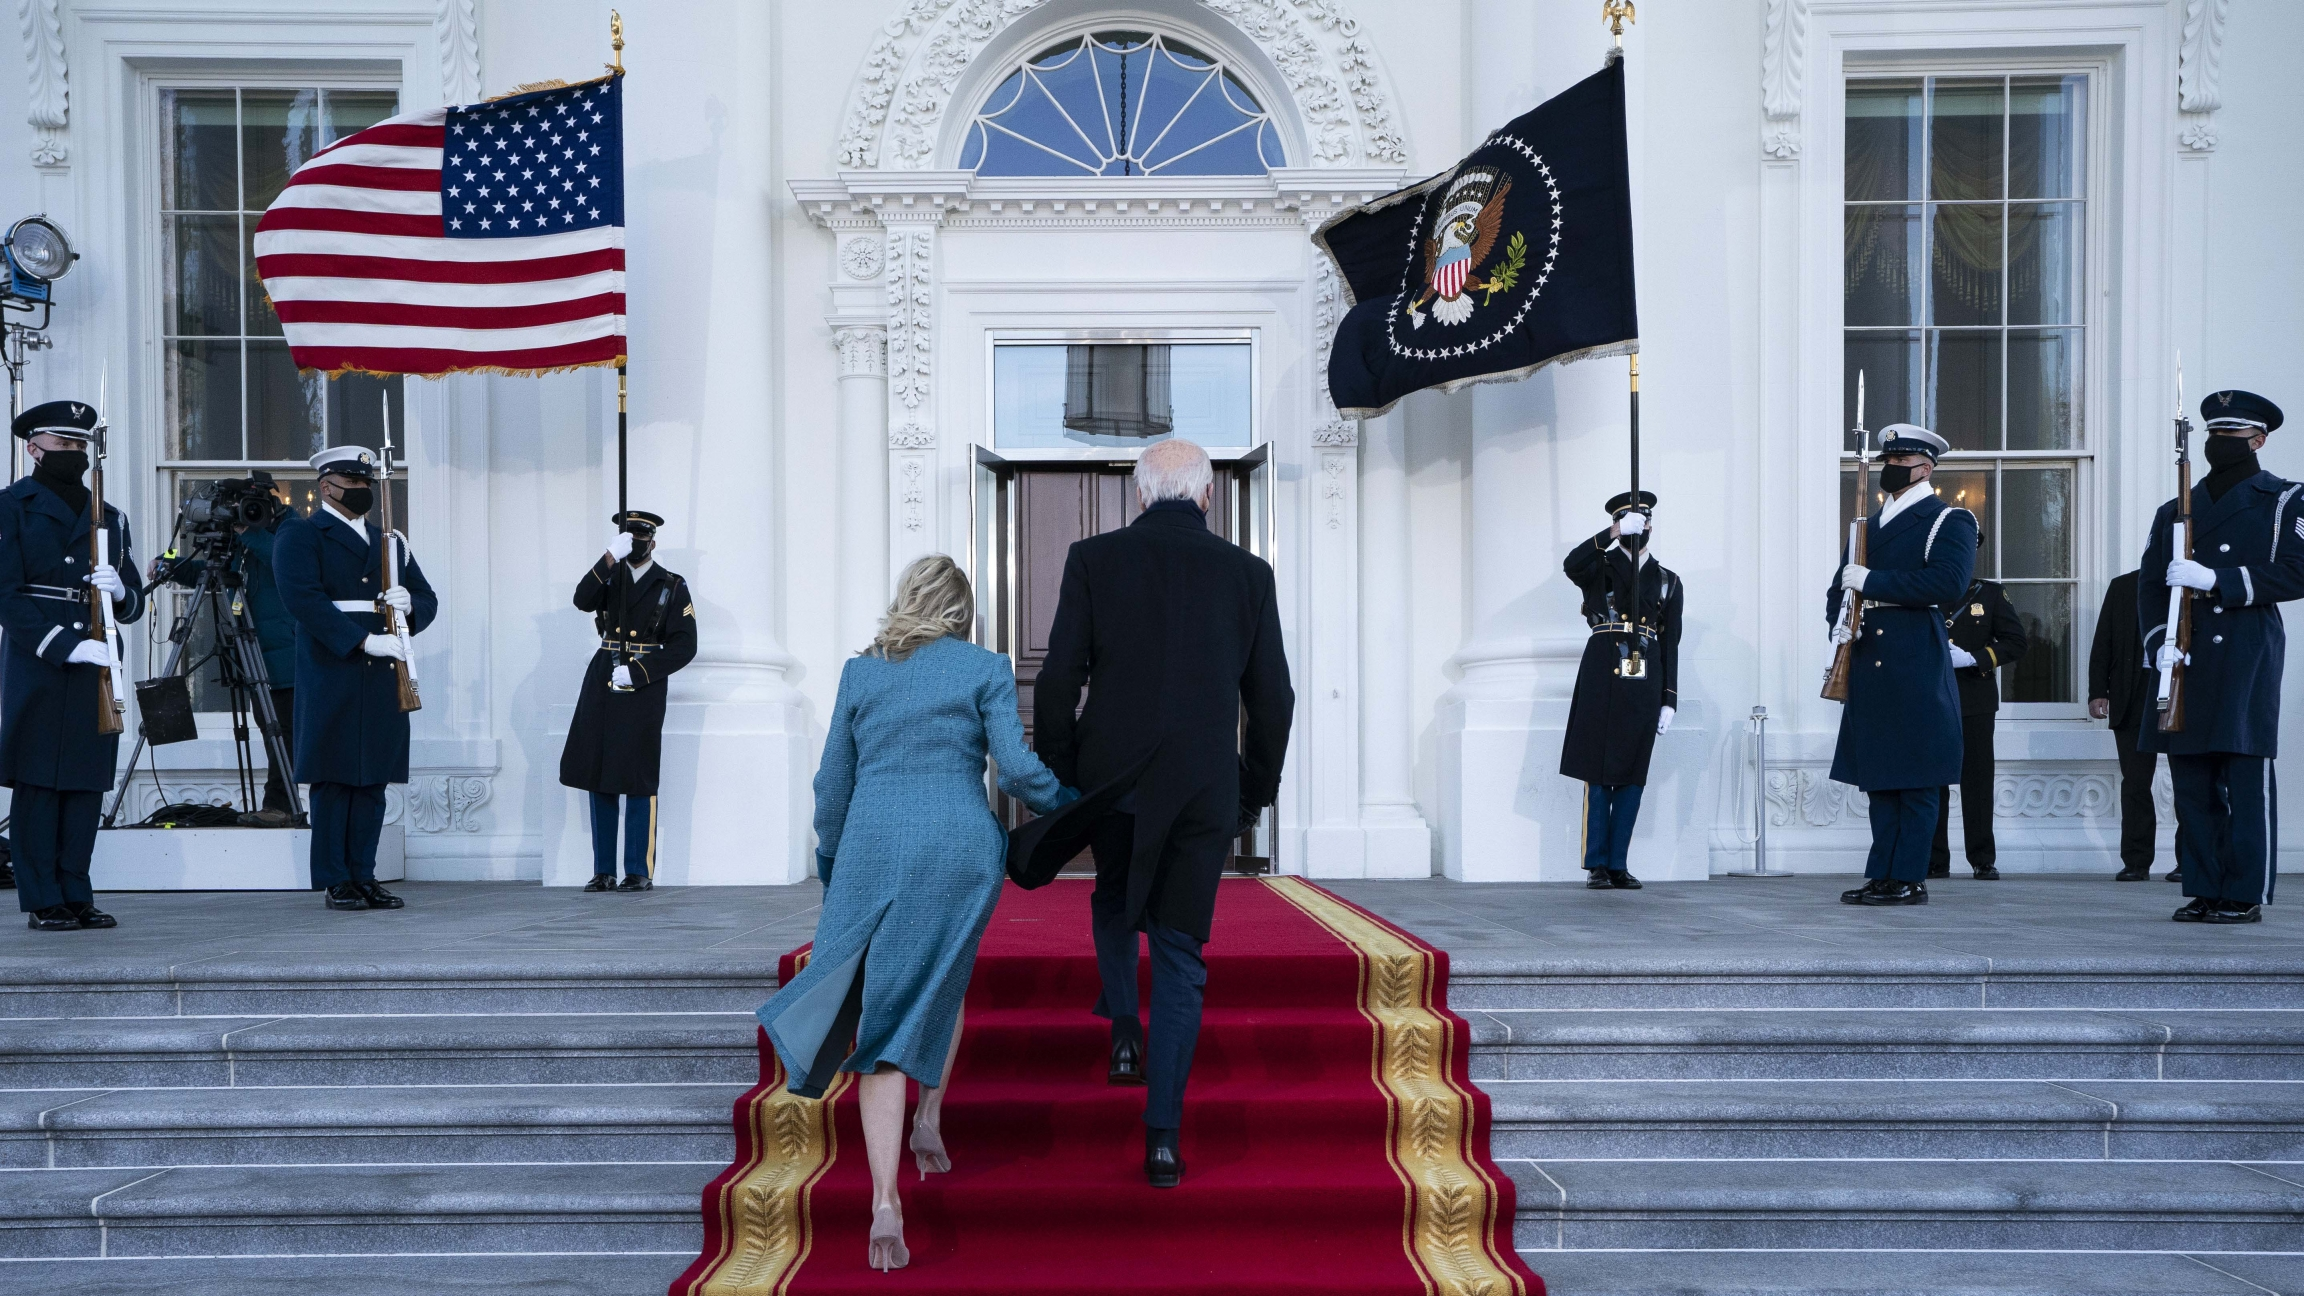 President Joe Biden and first lady Jill Biden arrive at the North Portico of the White House, Jan. 20, 2021, in Washington, DC.